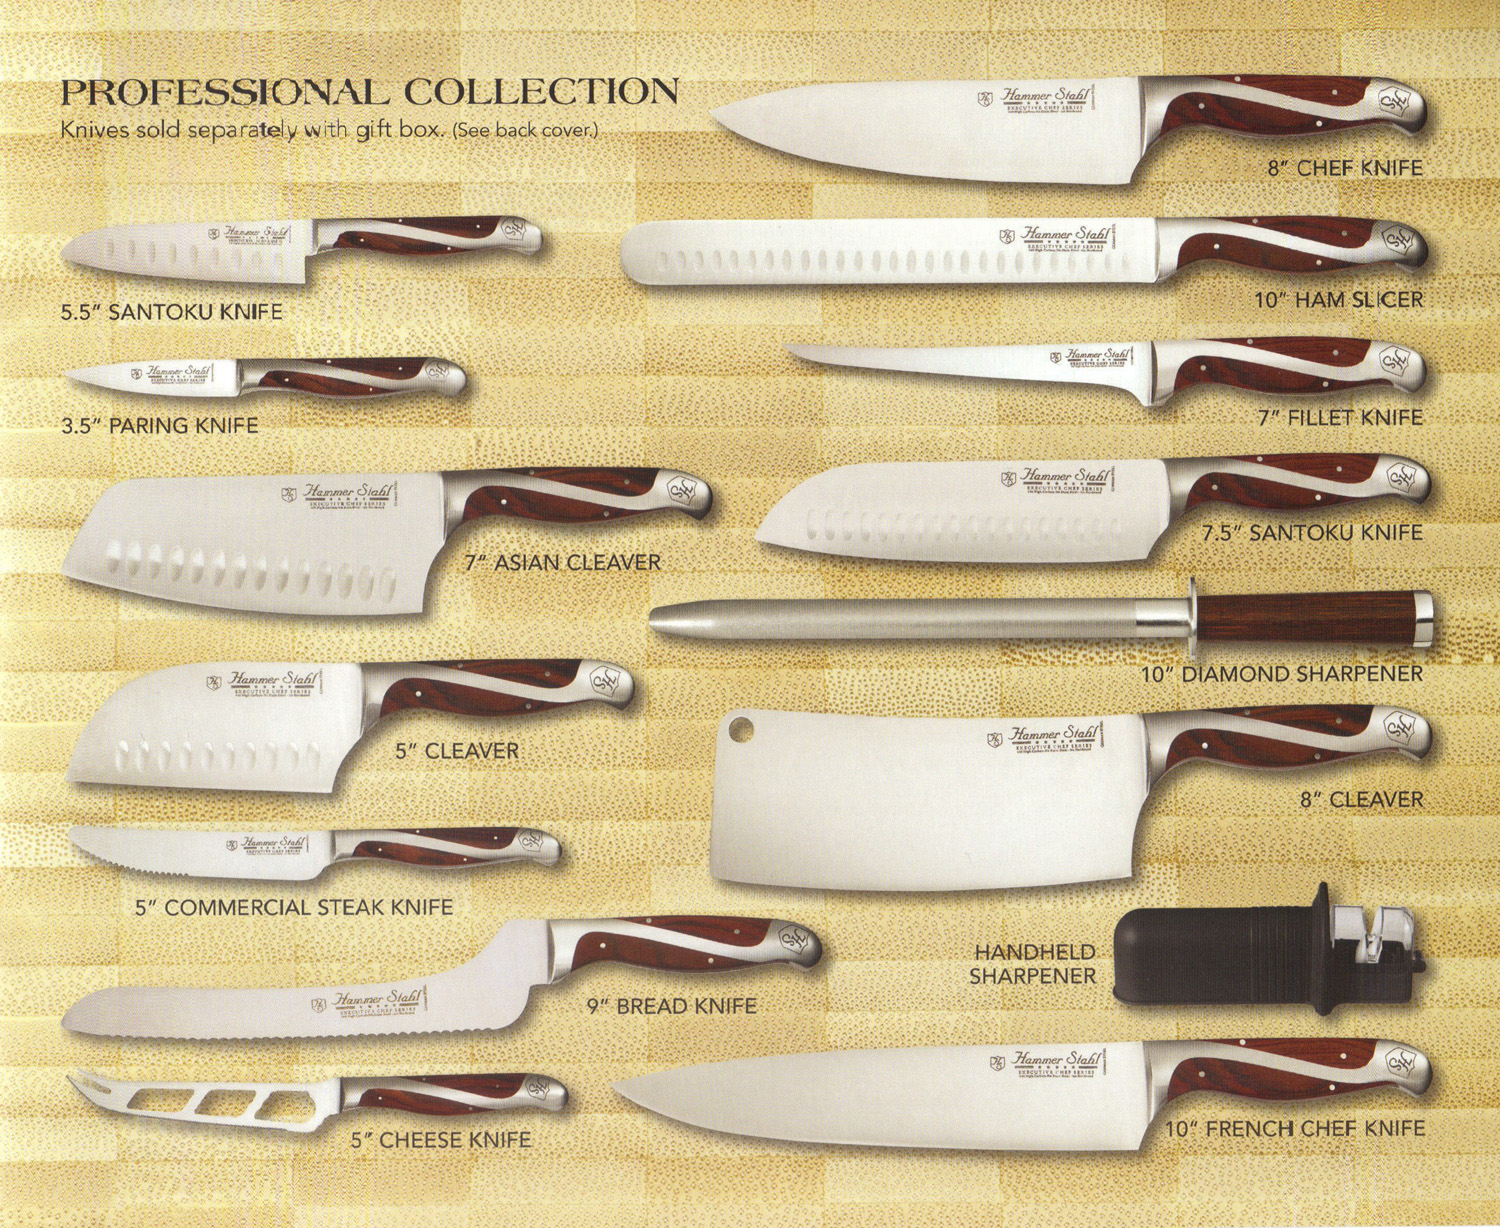 Professional Knife Sets